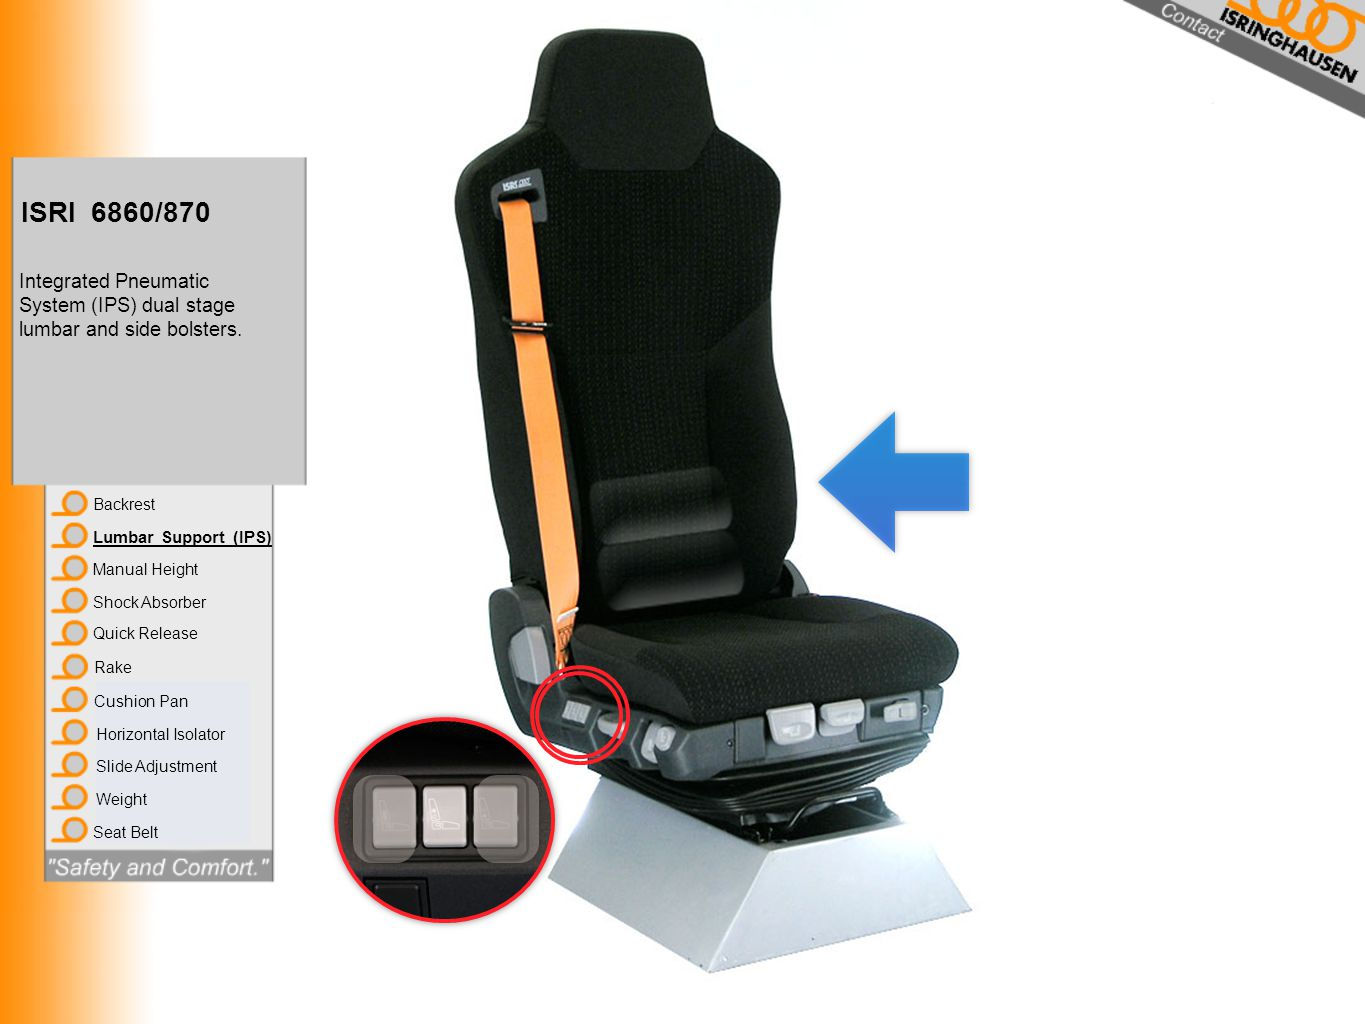 ISRI 6860/870 Integrated Pneumatic System (IPS) dual stage lumbar and side bolsters. Backrest. Lumbar Support (IPS)